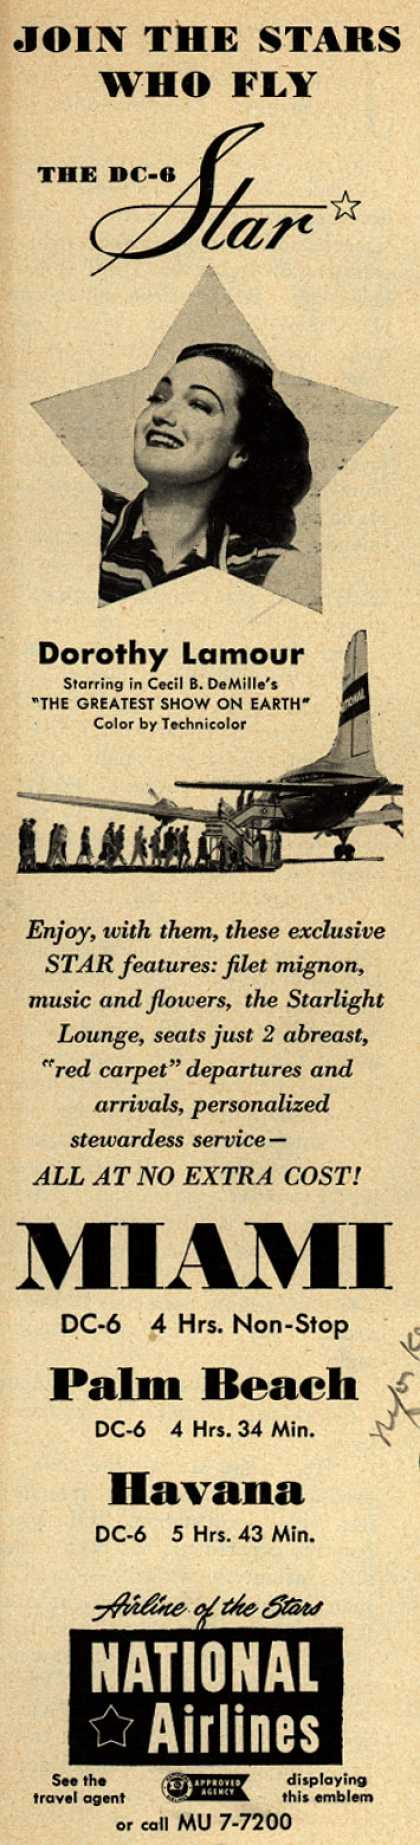 National Airline's Star luxury – Join The Stars Who Fly THE DC-6 Star (1952)